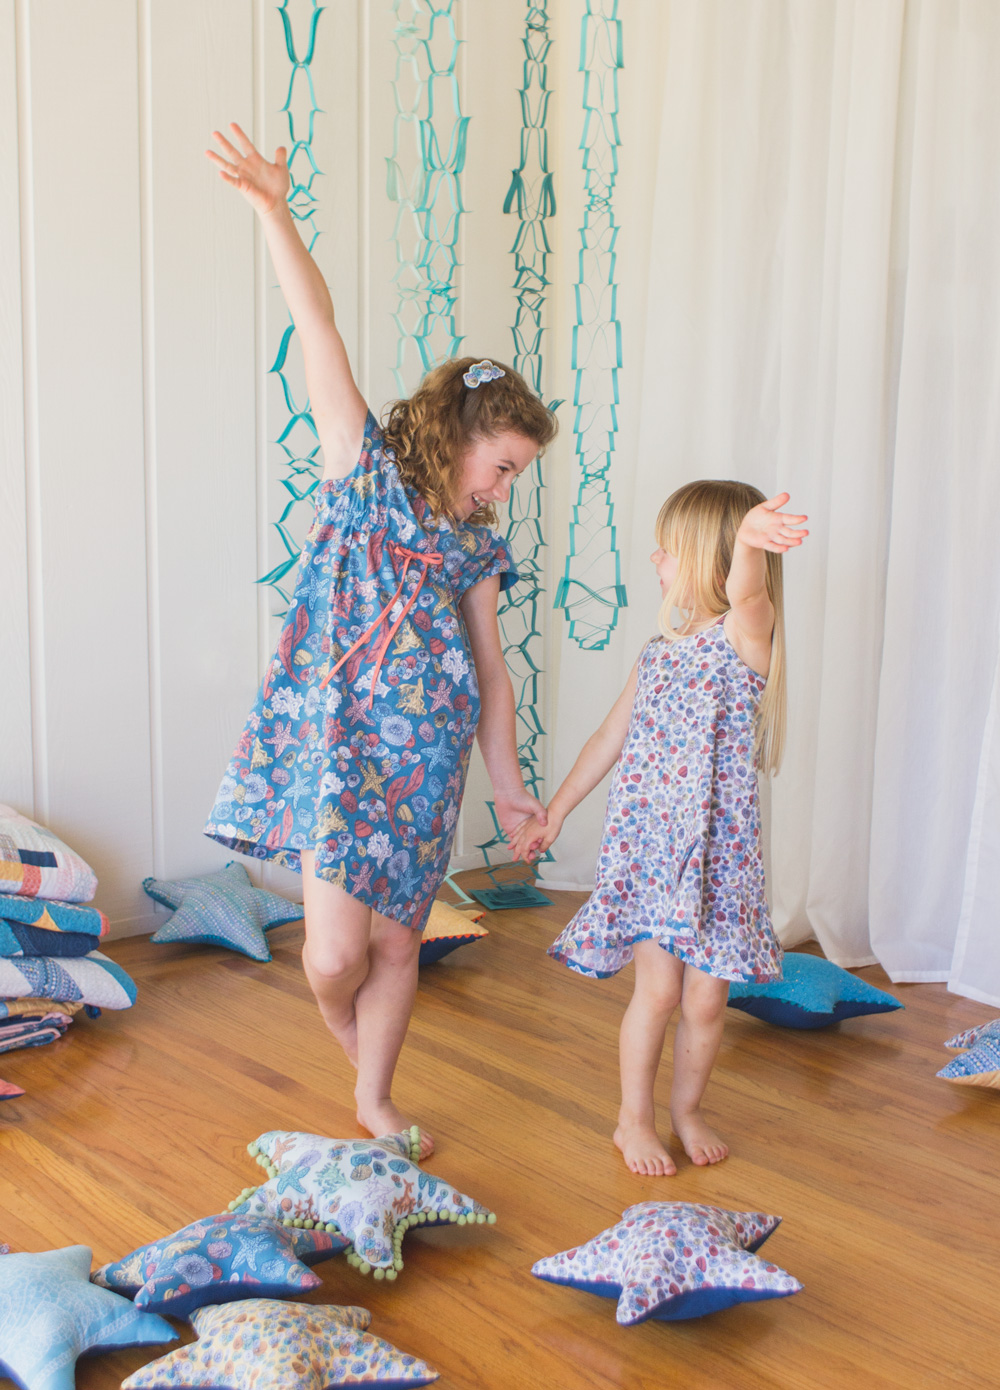 Girl on left wears Roller Skate Dress, Girl on right wears Pinwheel Slip Dress.  Sewn by Danielle Collins Photo by Danielle Collins